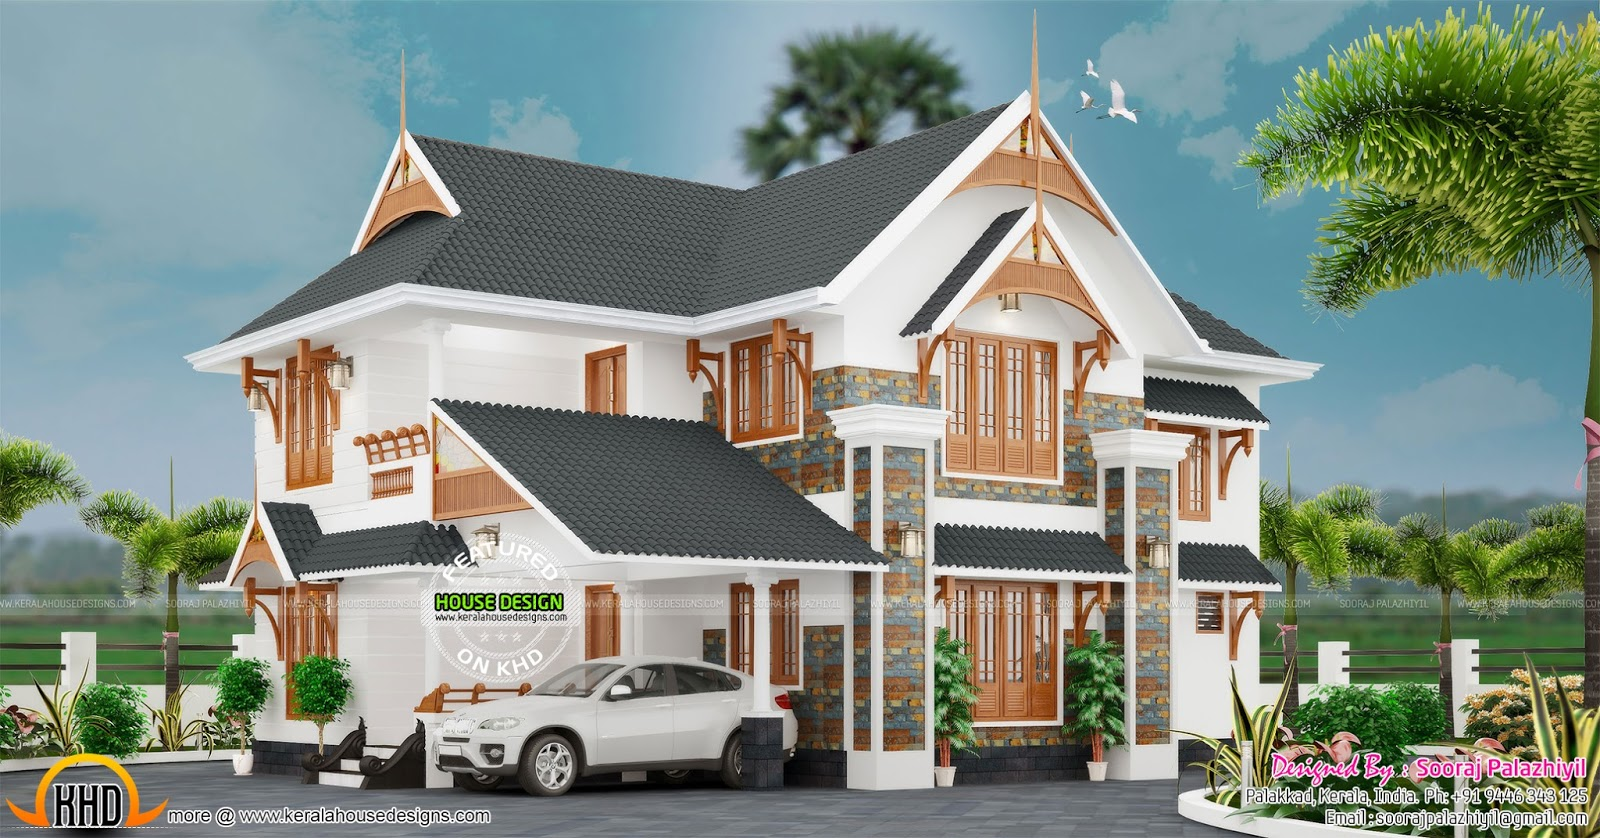 Beautiful elegant home design kerala home design and for Elegant house plans photos